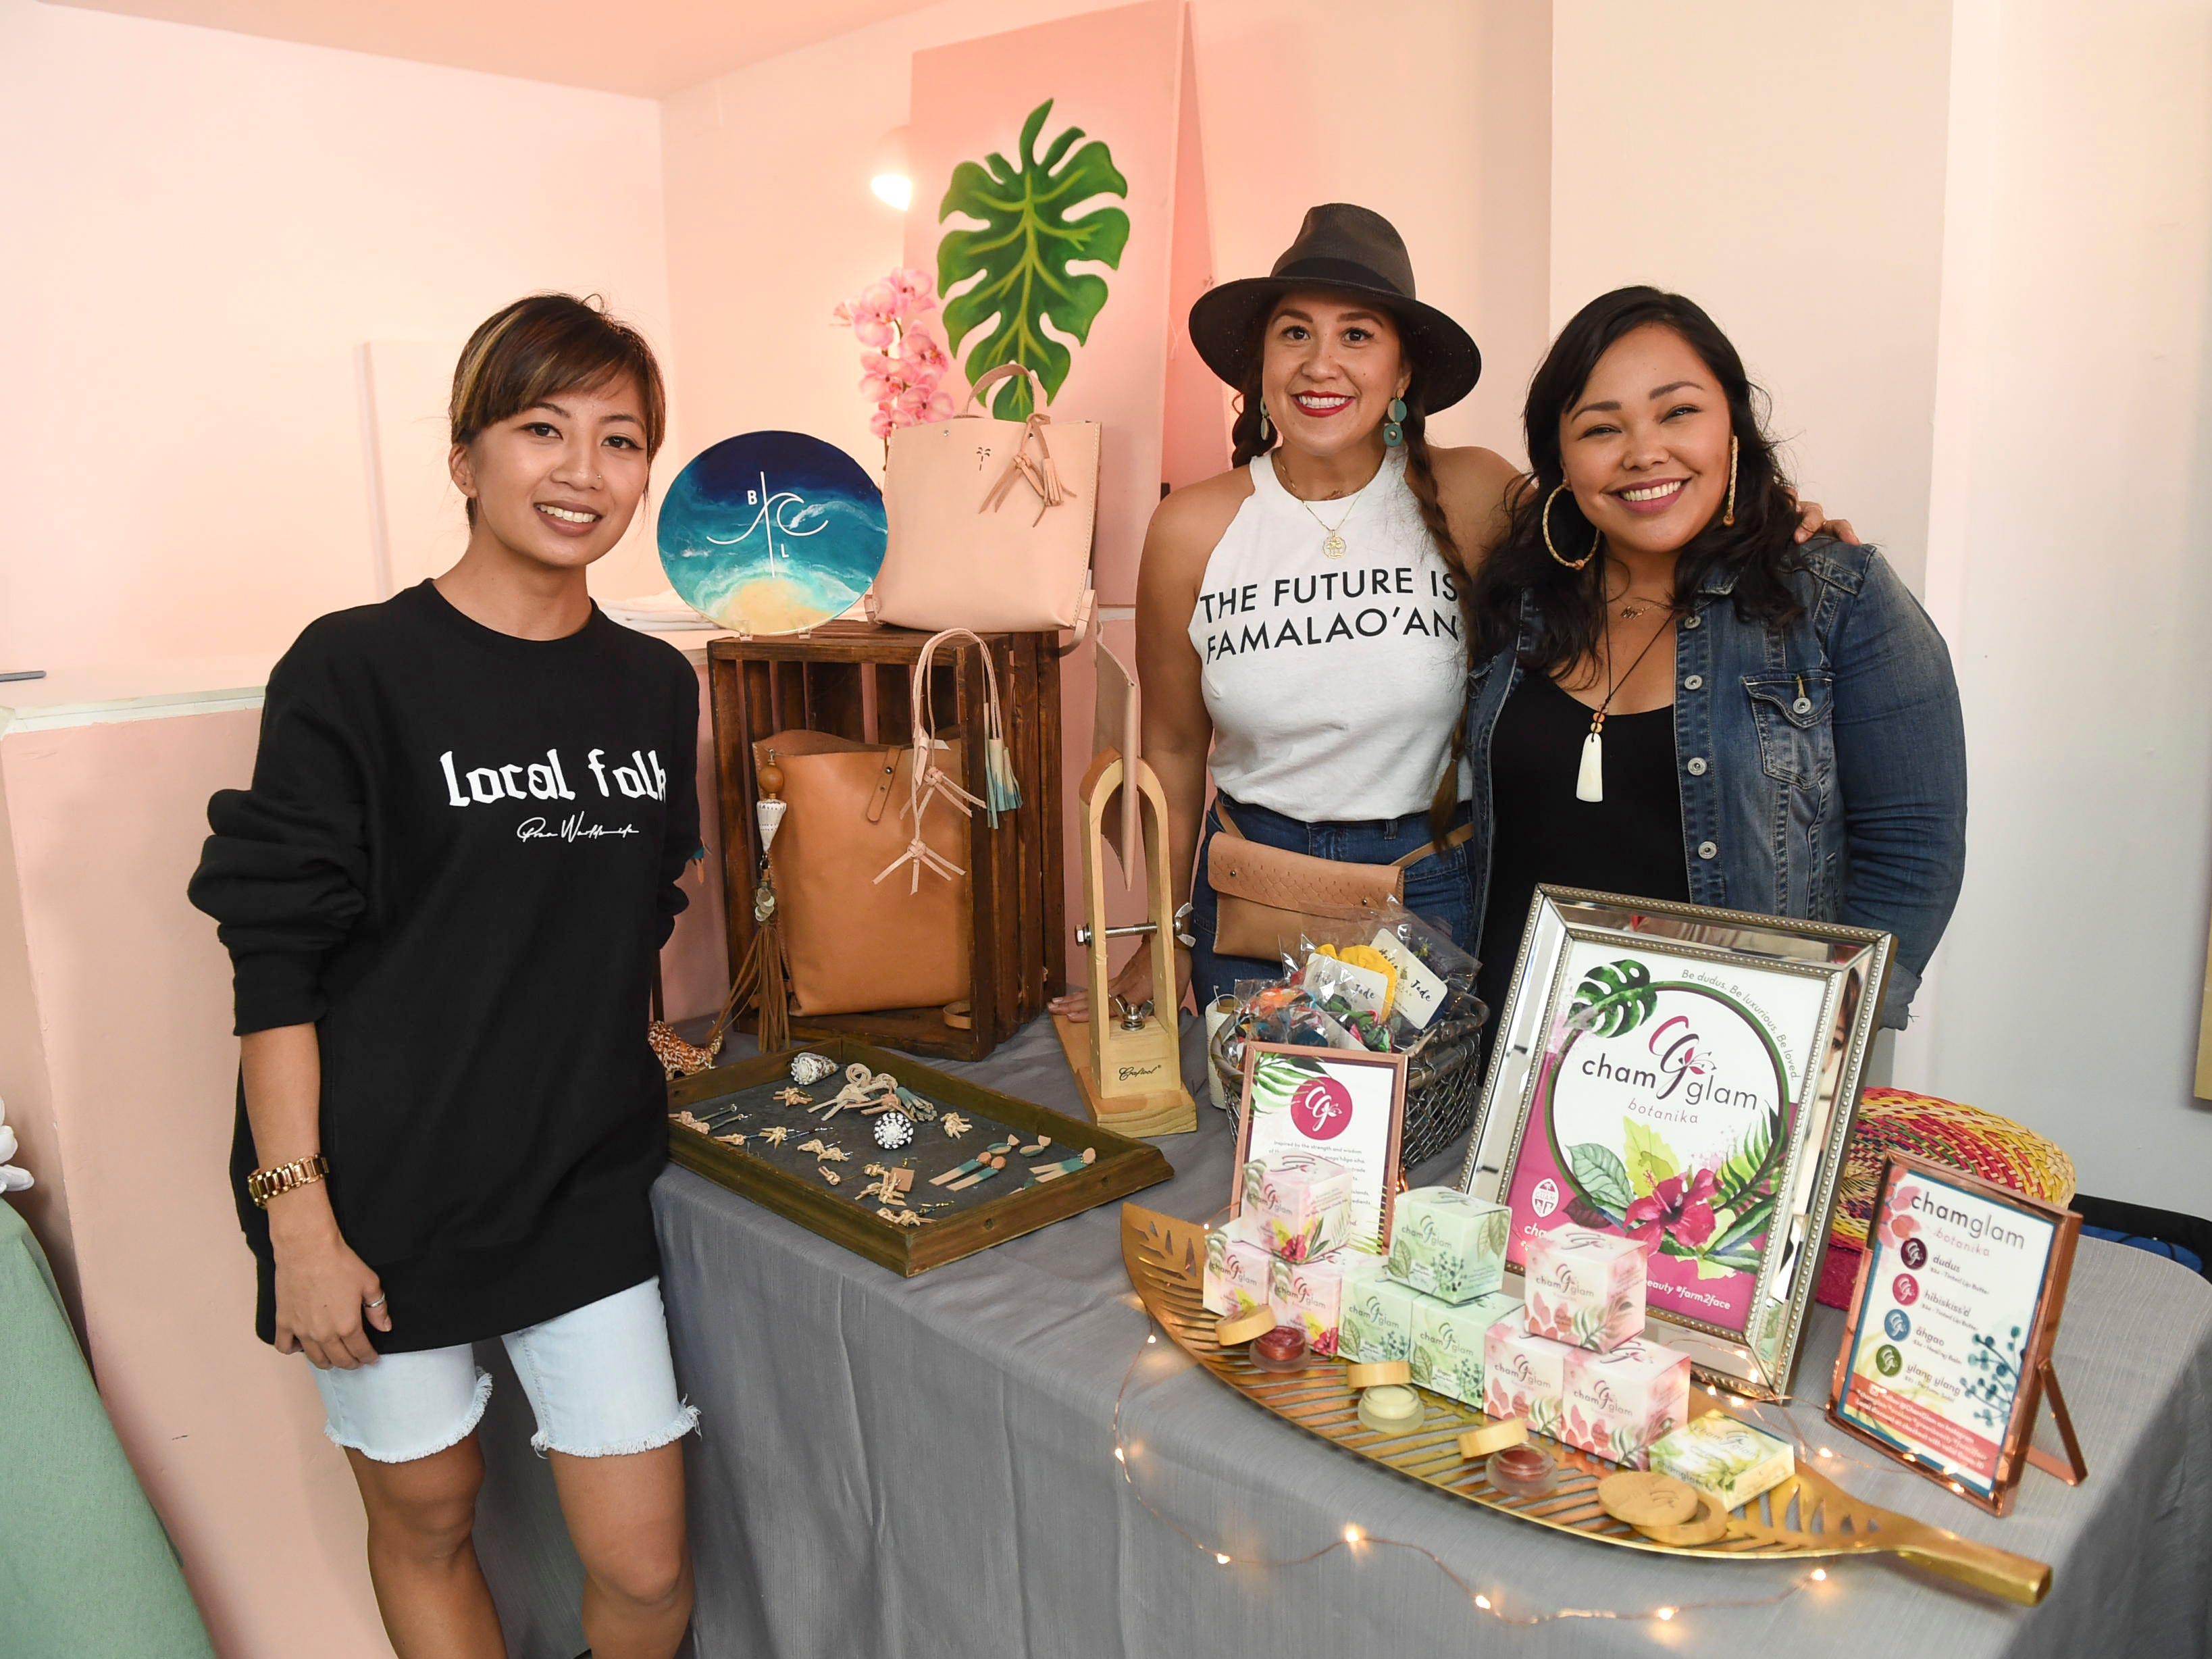 Leslie Sanga, owner of upcoming clothing company, Gacha, left, with Blue Latitude owner Abby Crain, center and ChamGlam Botanika owner Ursula Herrera, during the launch party of women's group, Maga'håga Rising, at Sundays Guam in Tumon, Jan. 13, 2018.